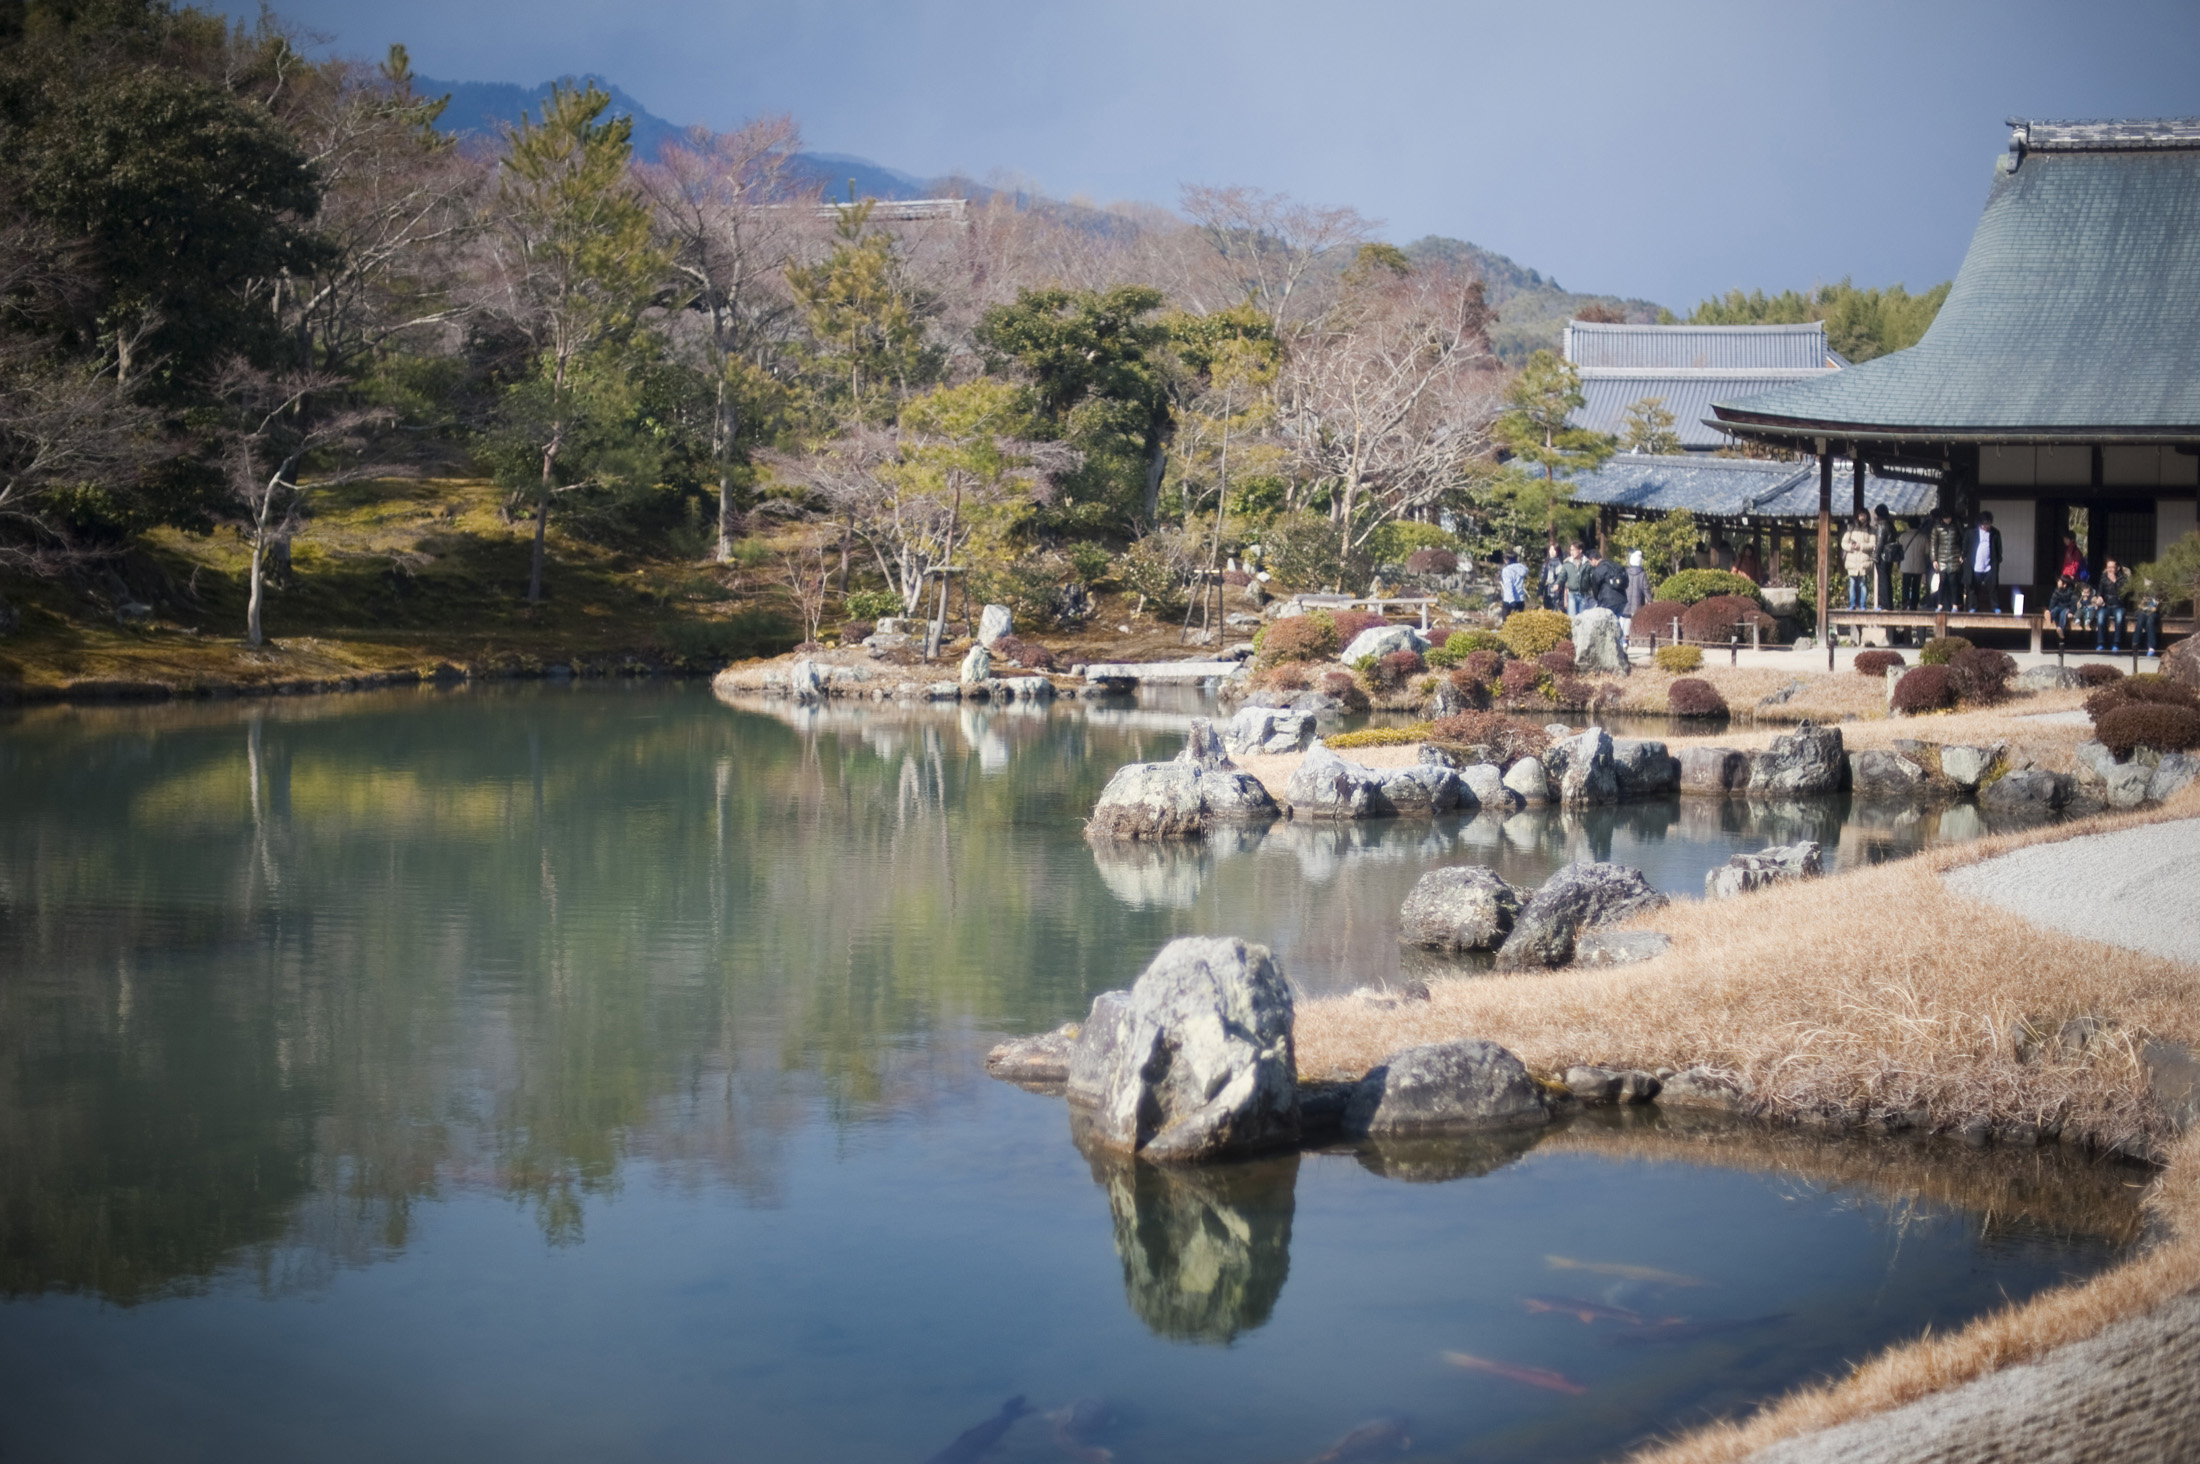 The Sogen Pond at the Tenryu Shiseizen-ji temple complex